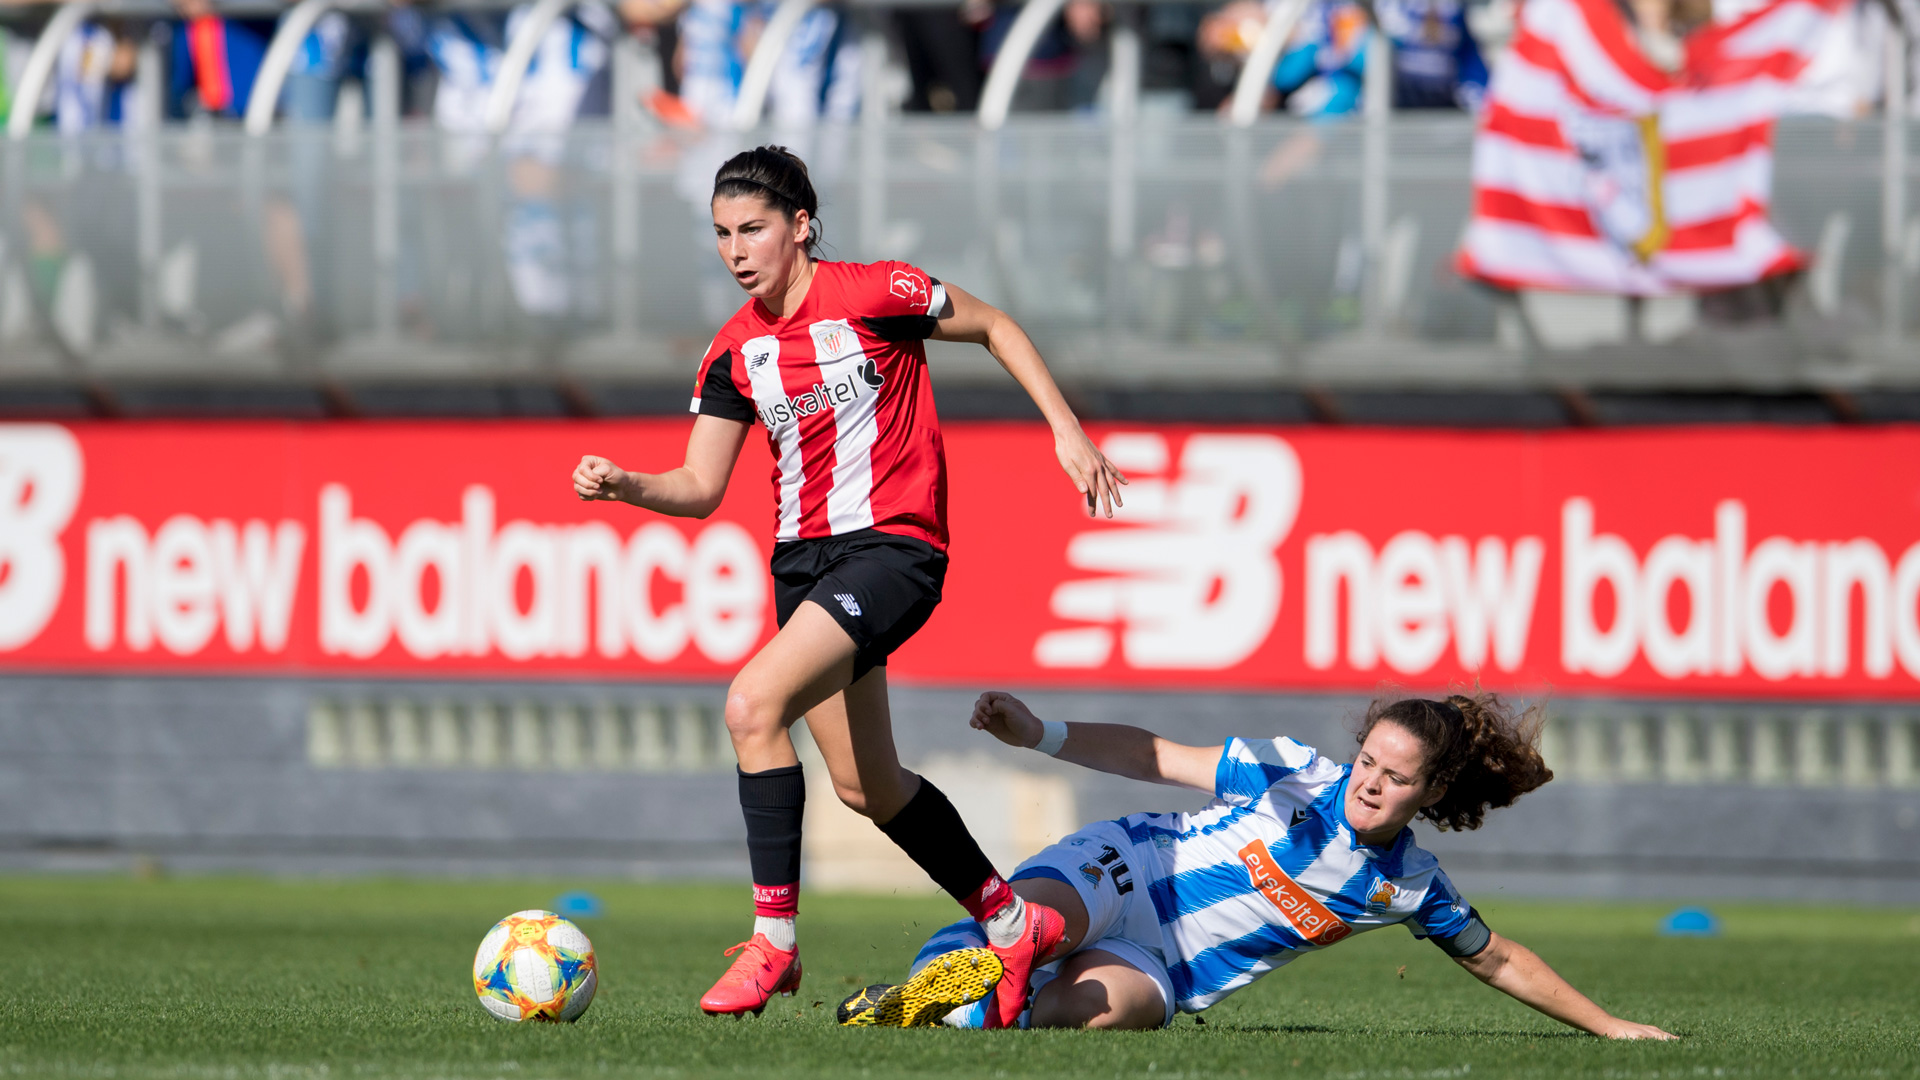 Athletic Club-Real Sociedad partidaren buletina deskargatu